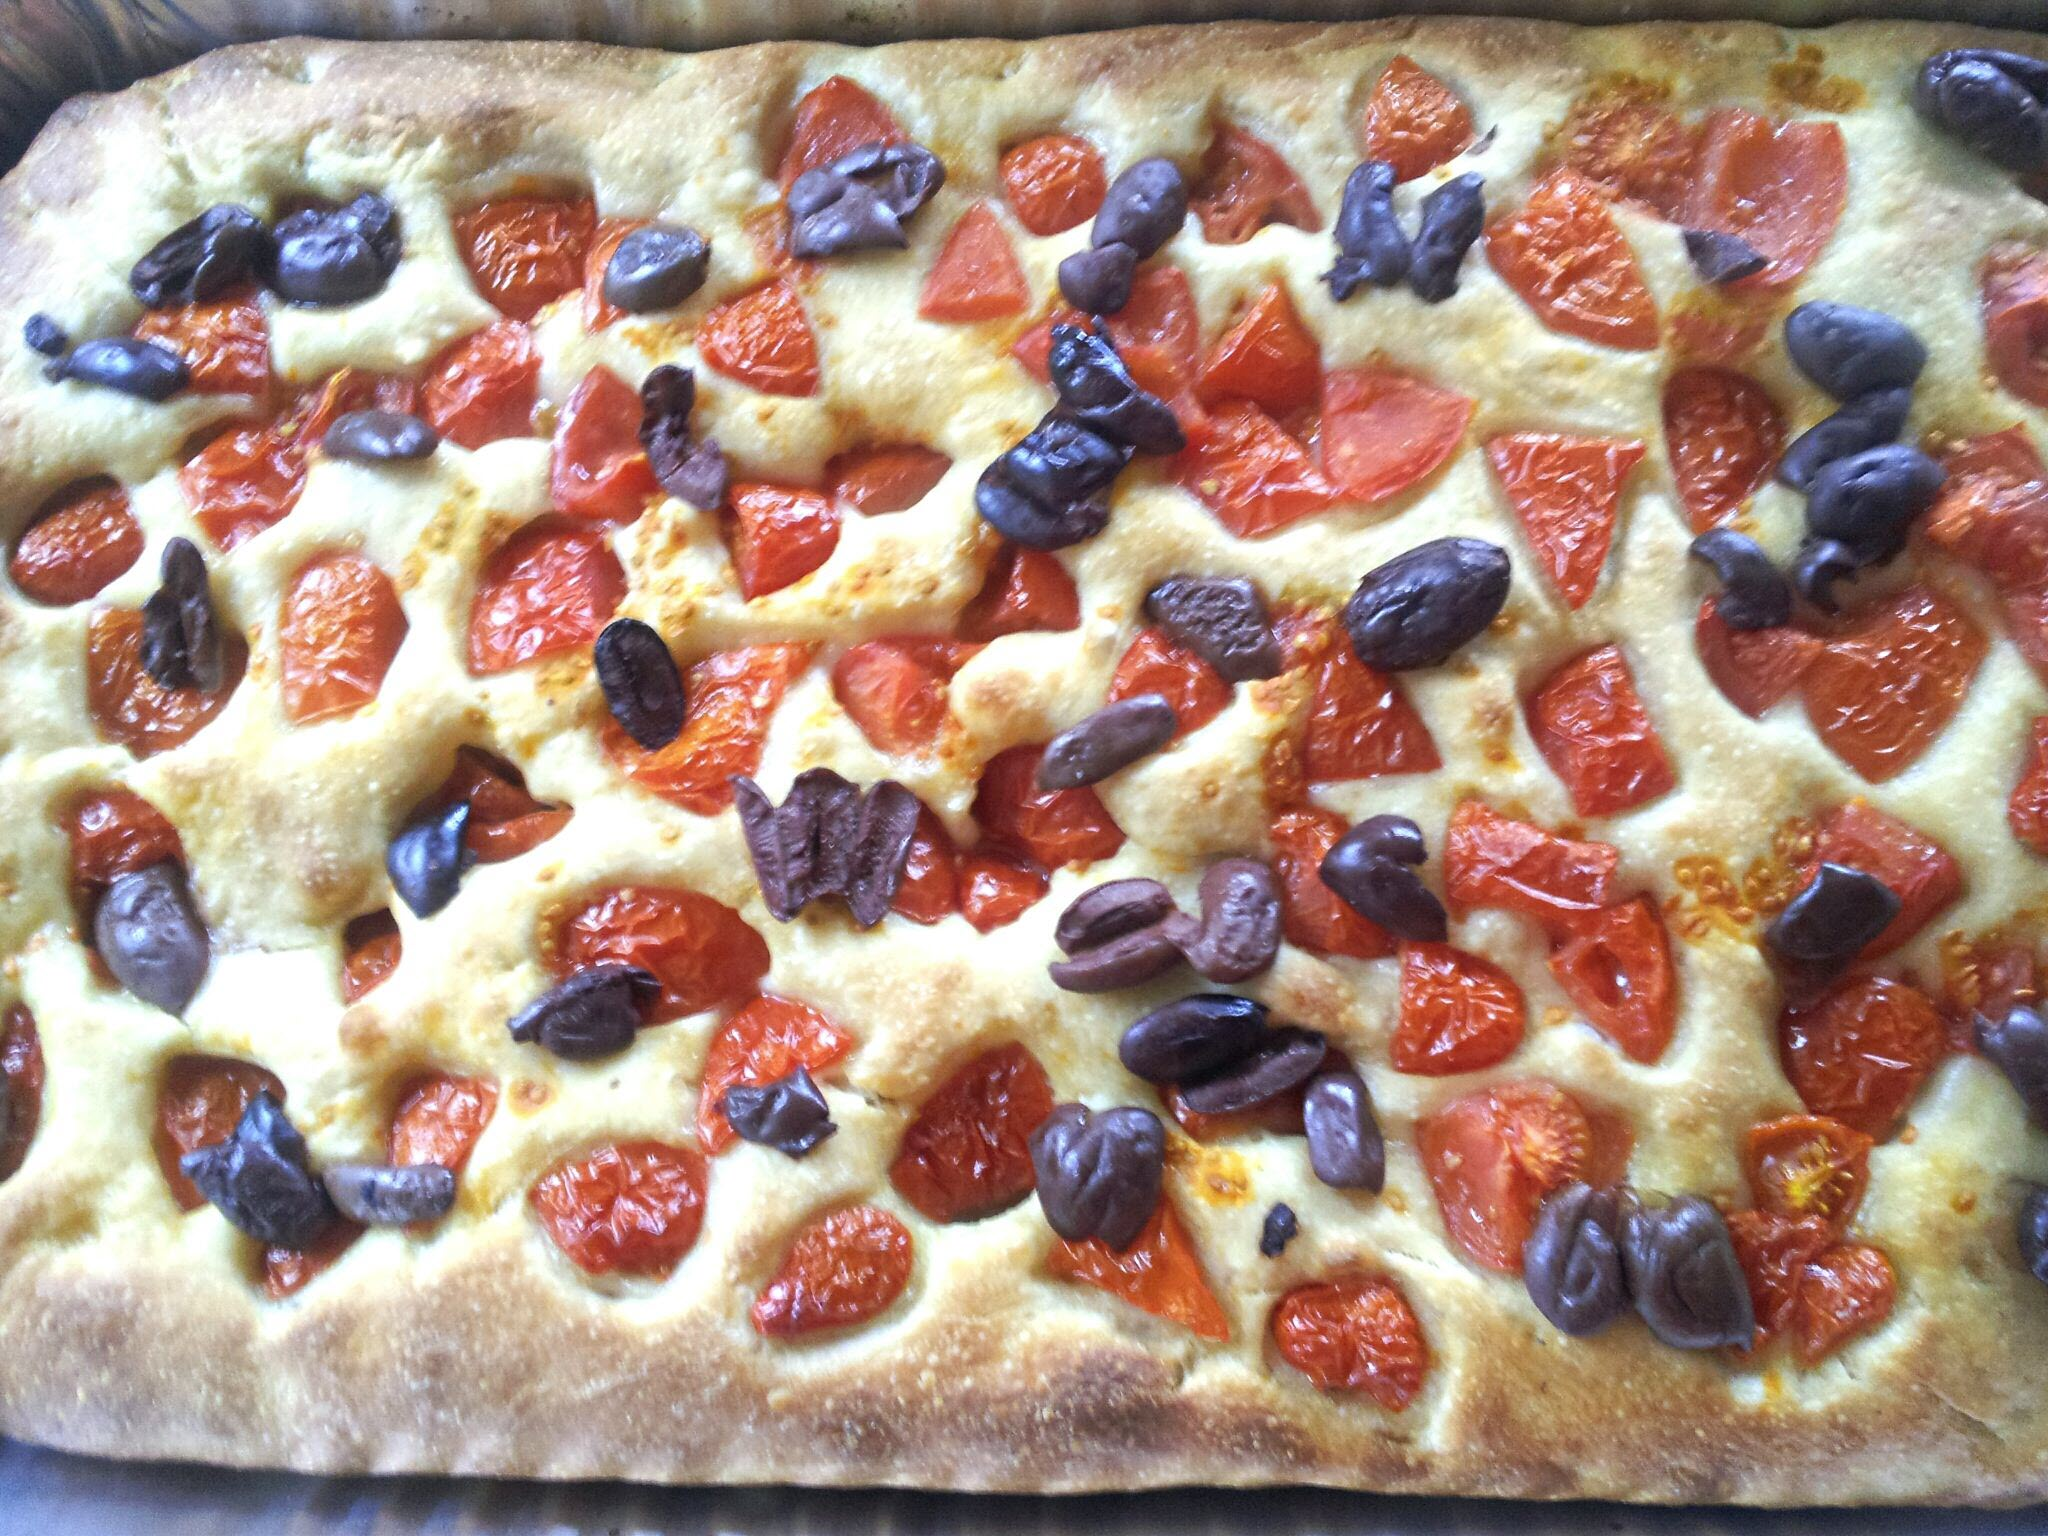 Focaccia Barese al Pomodoro e Olive (Homemade Italian Focaccia with Tomatoes and Olives)